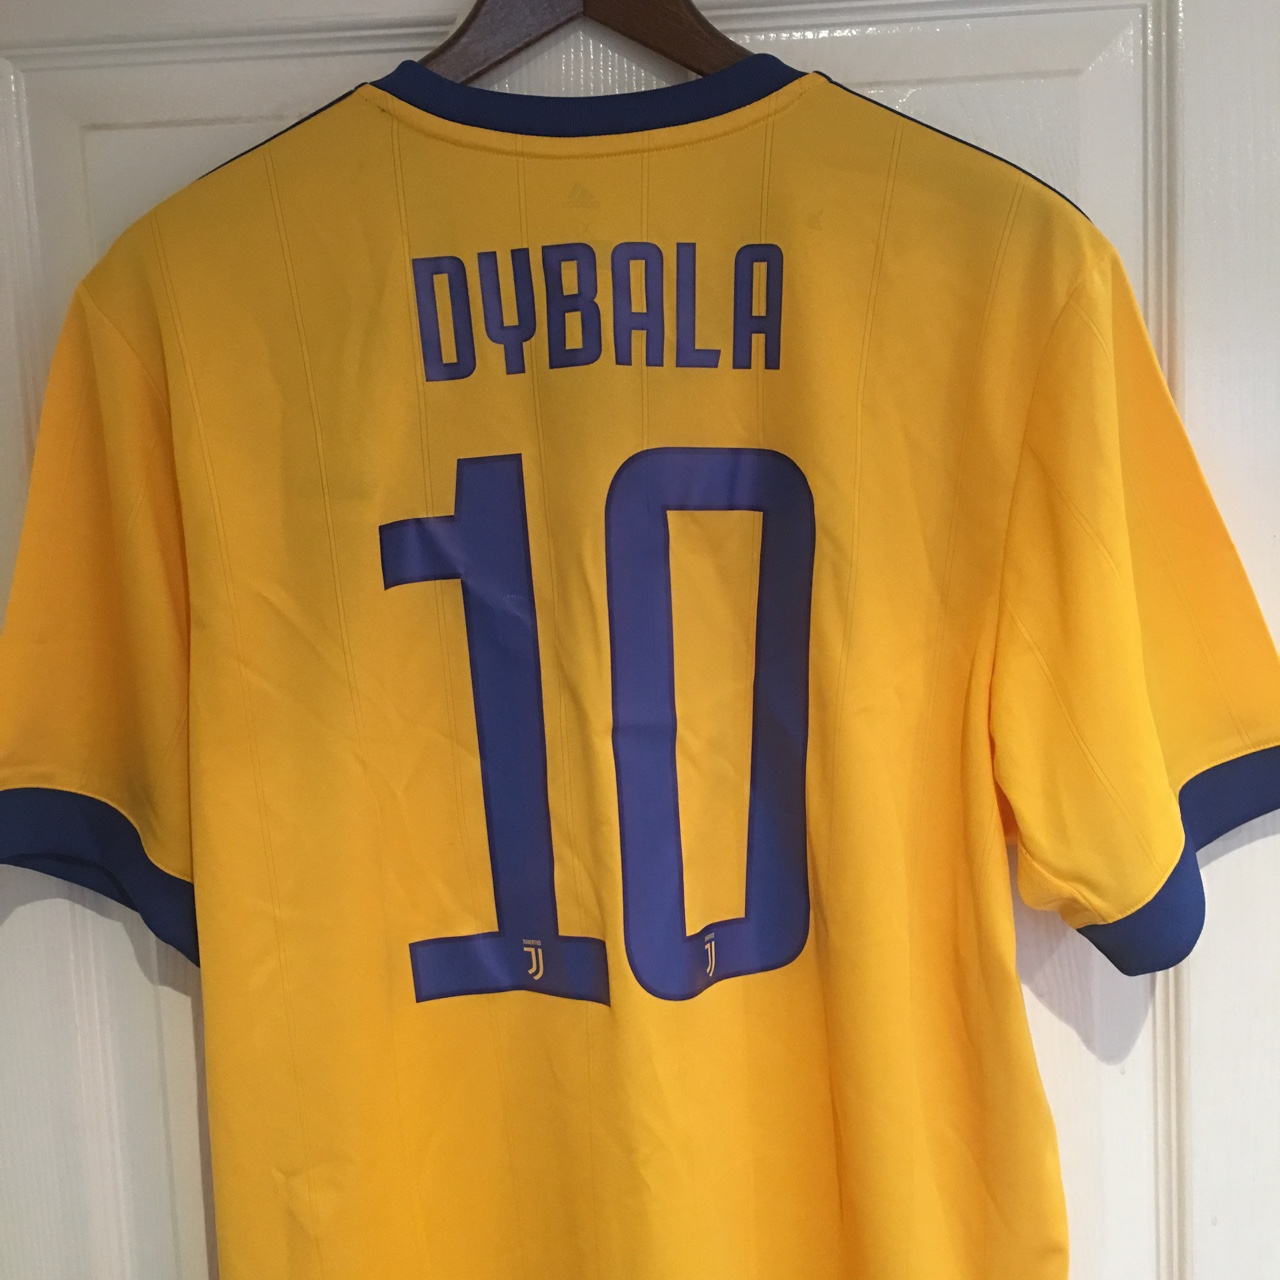 low priced 69cf3 3bad1 Juventus away kit 2017/18 Yellow and blue Dybala... - Depop